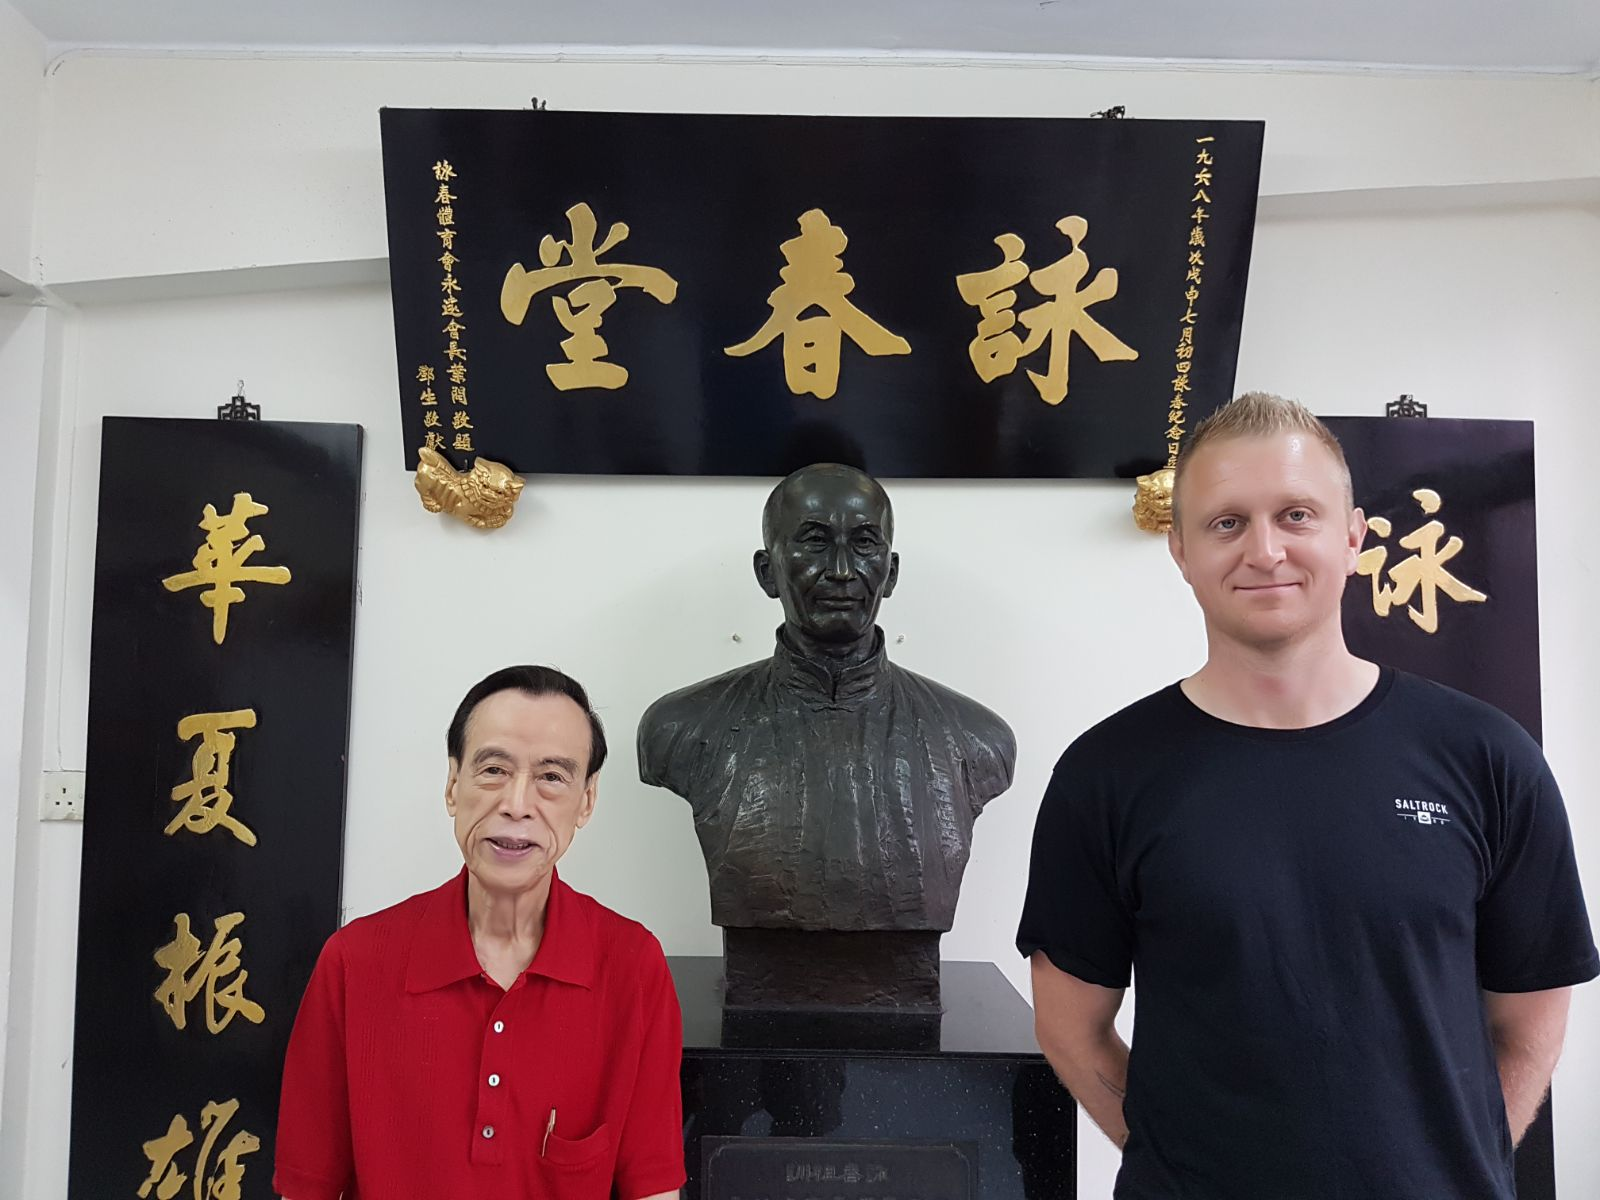 Robert Ley with Ip Man student GM Lee Wai Chi stood in the Ving Tsun Athletic Association